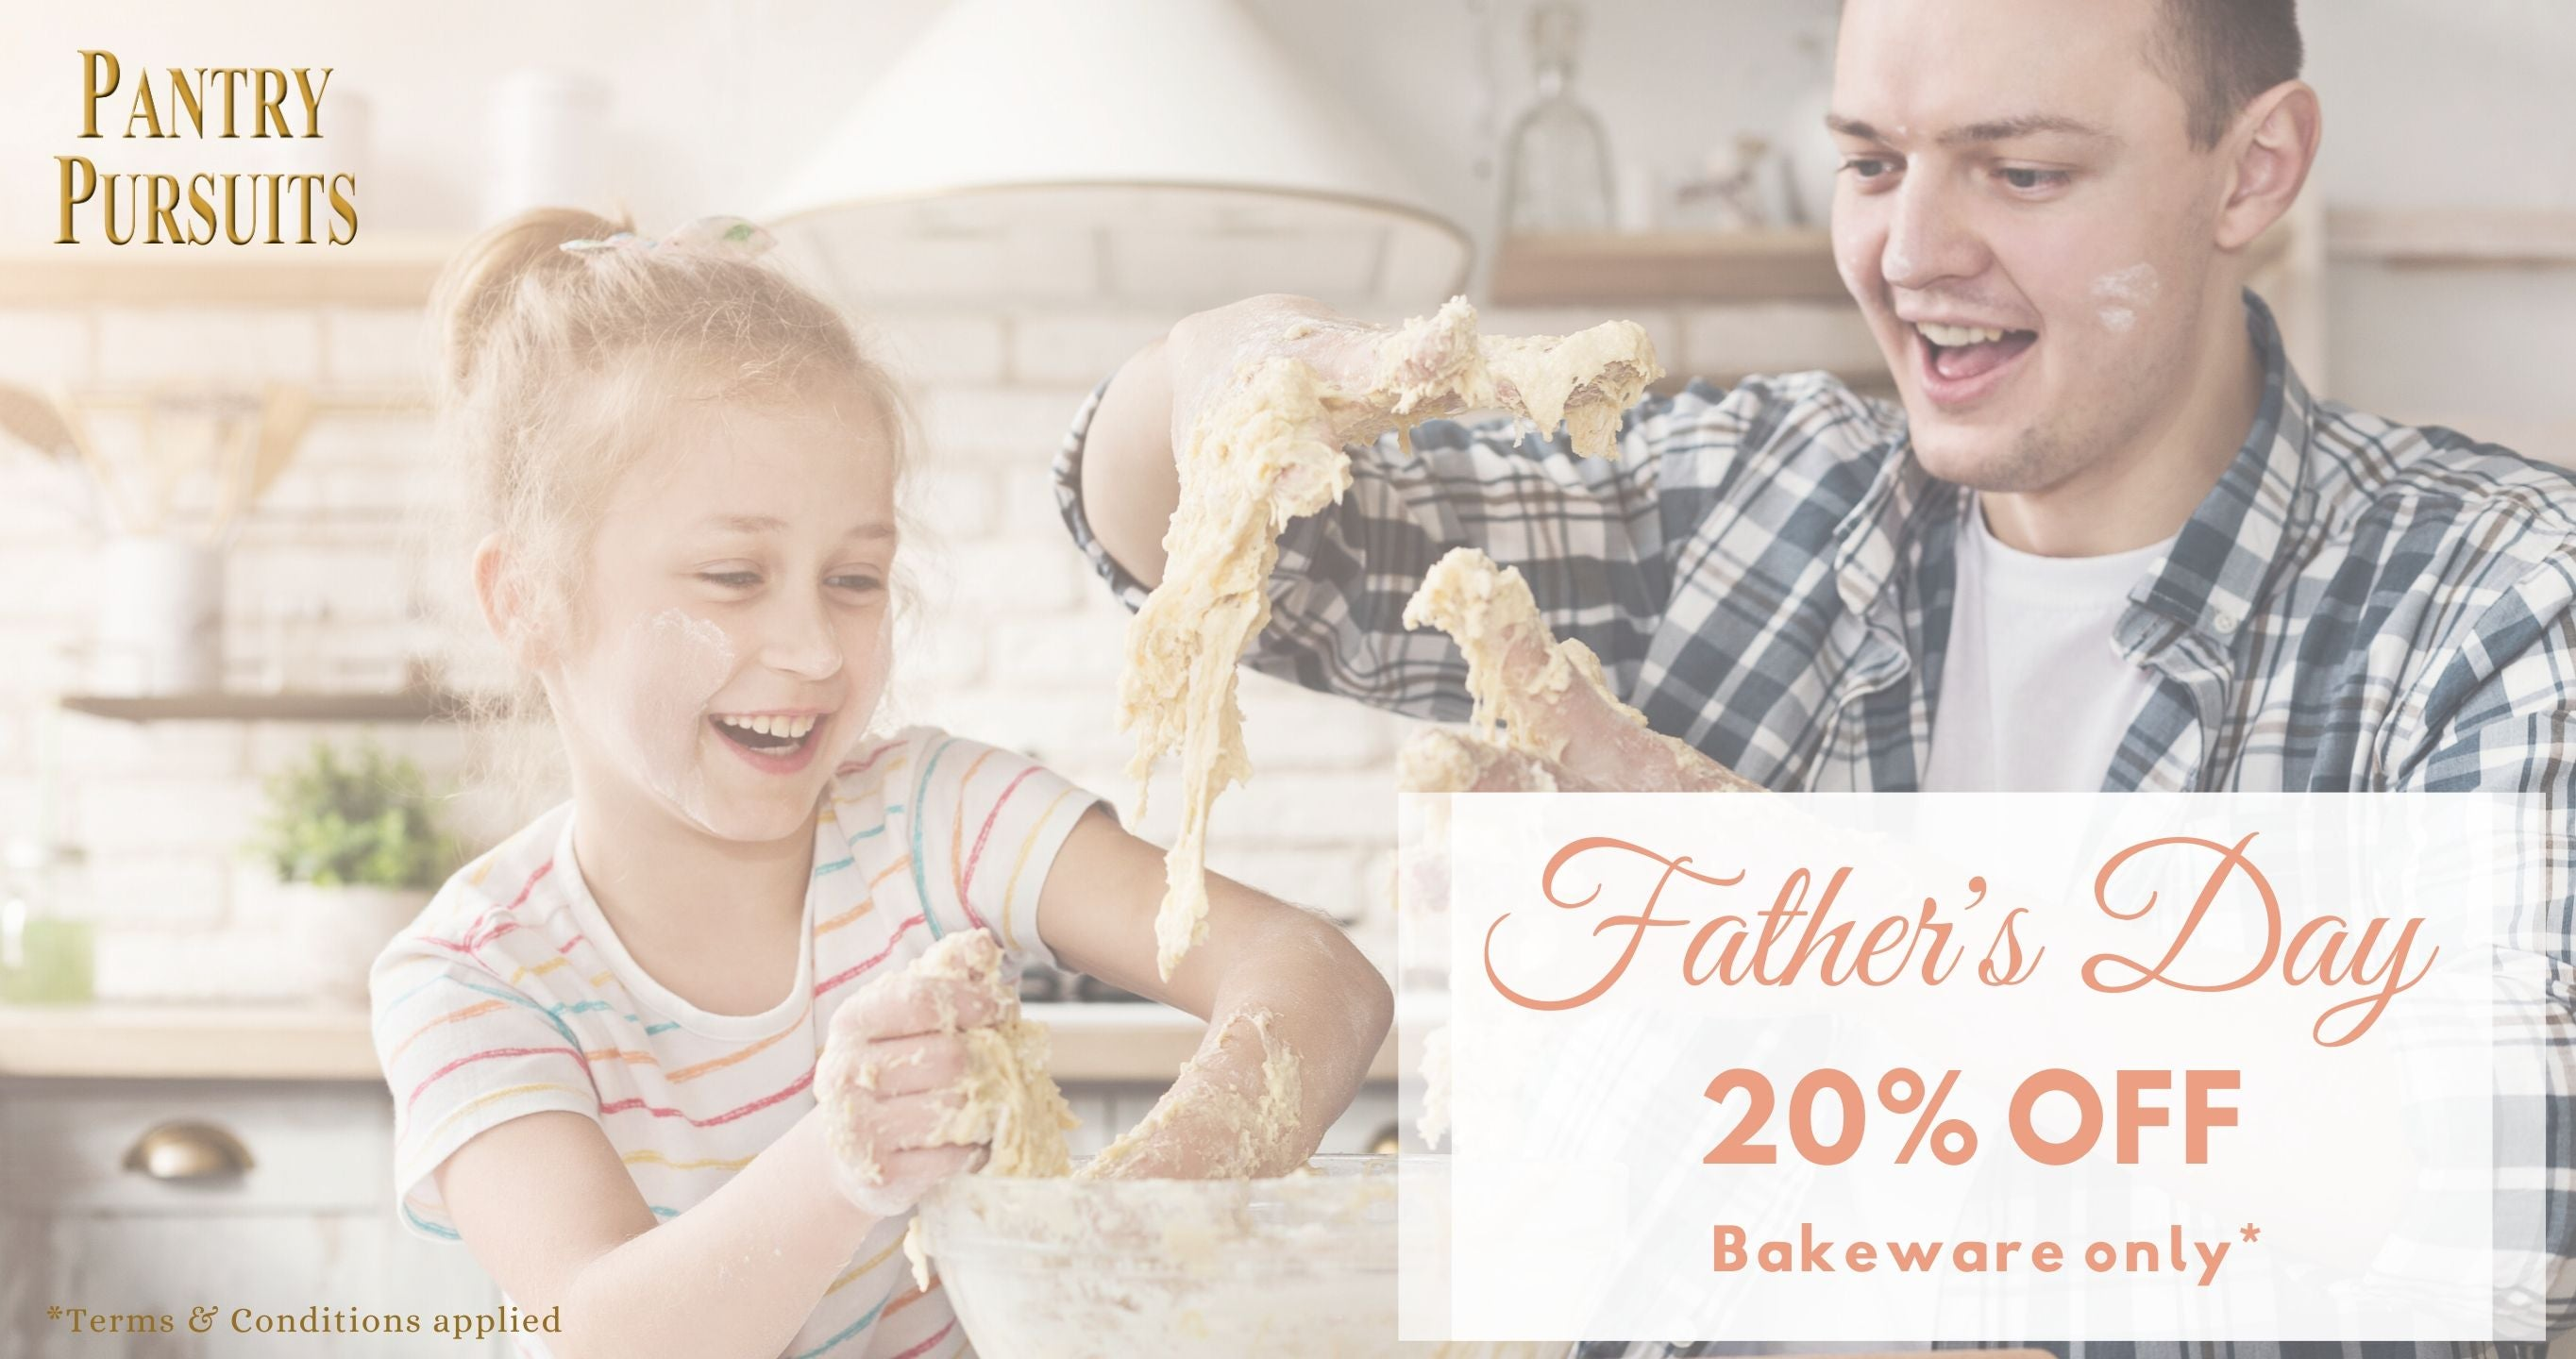 Father's Day 2020 Promotion